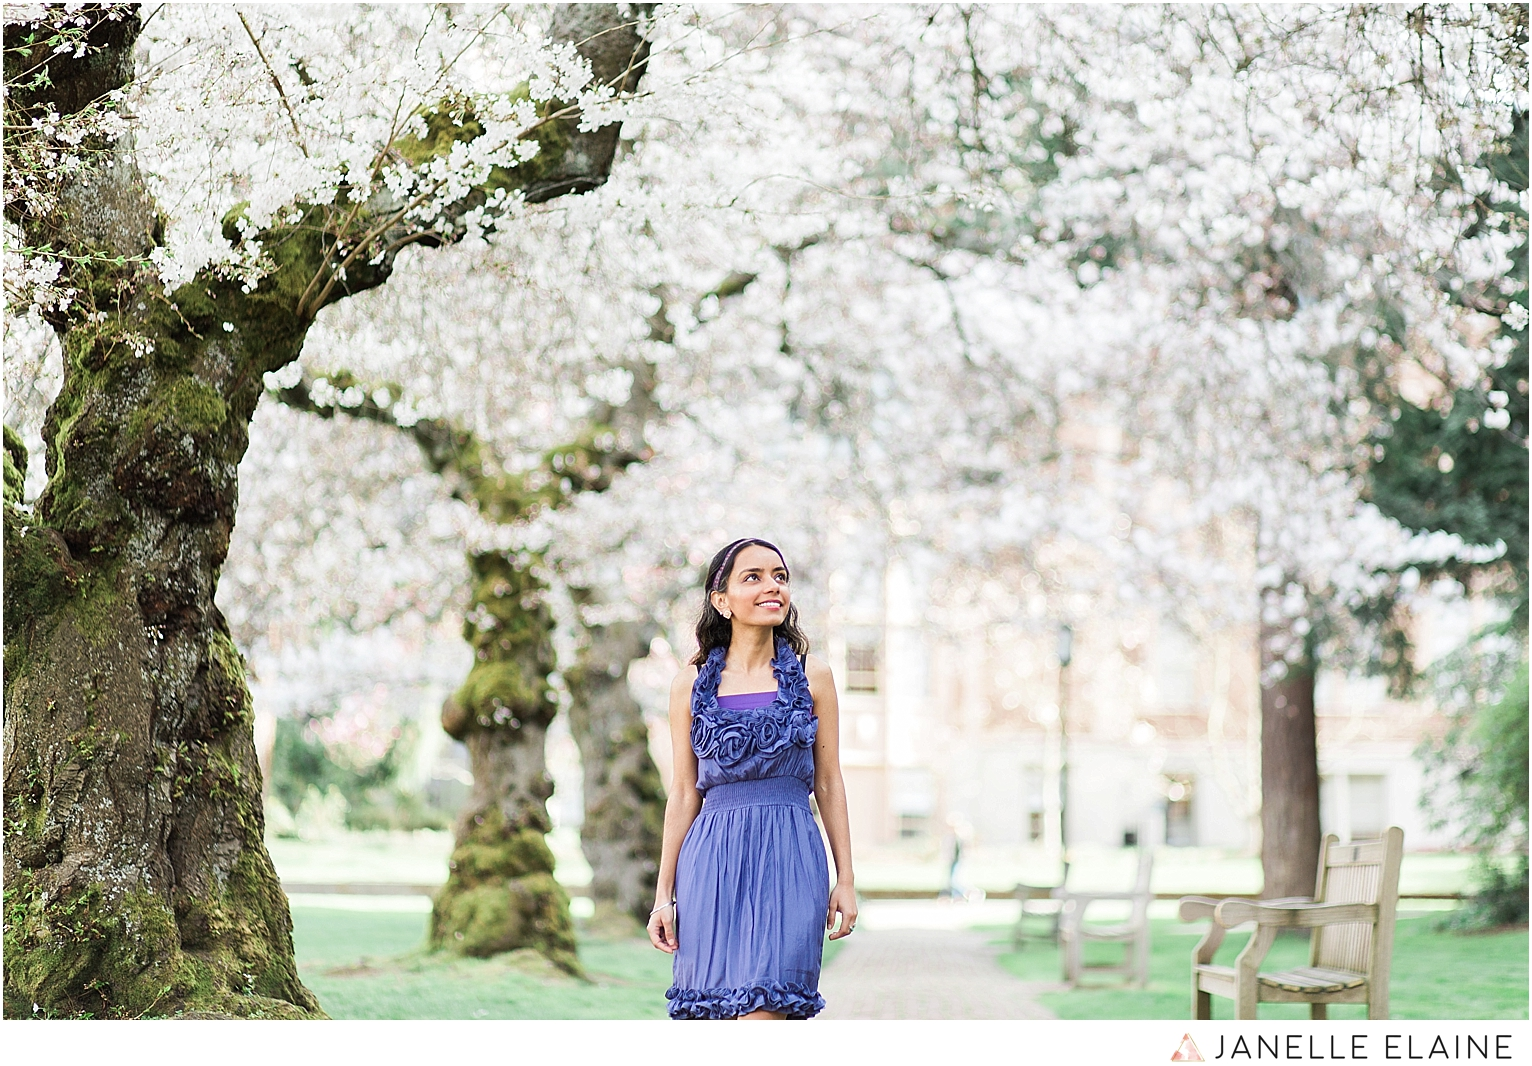 Sufience-Harkirat-spring portrait session-cherry blossoms-uw-seattle photographer janelle elaine-9.jpg